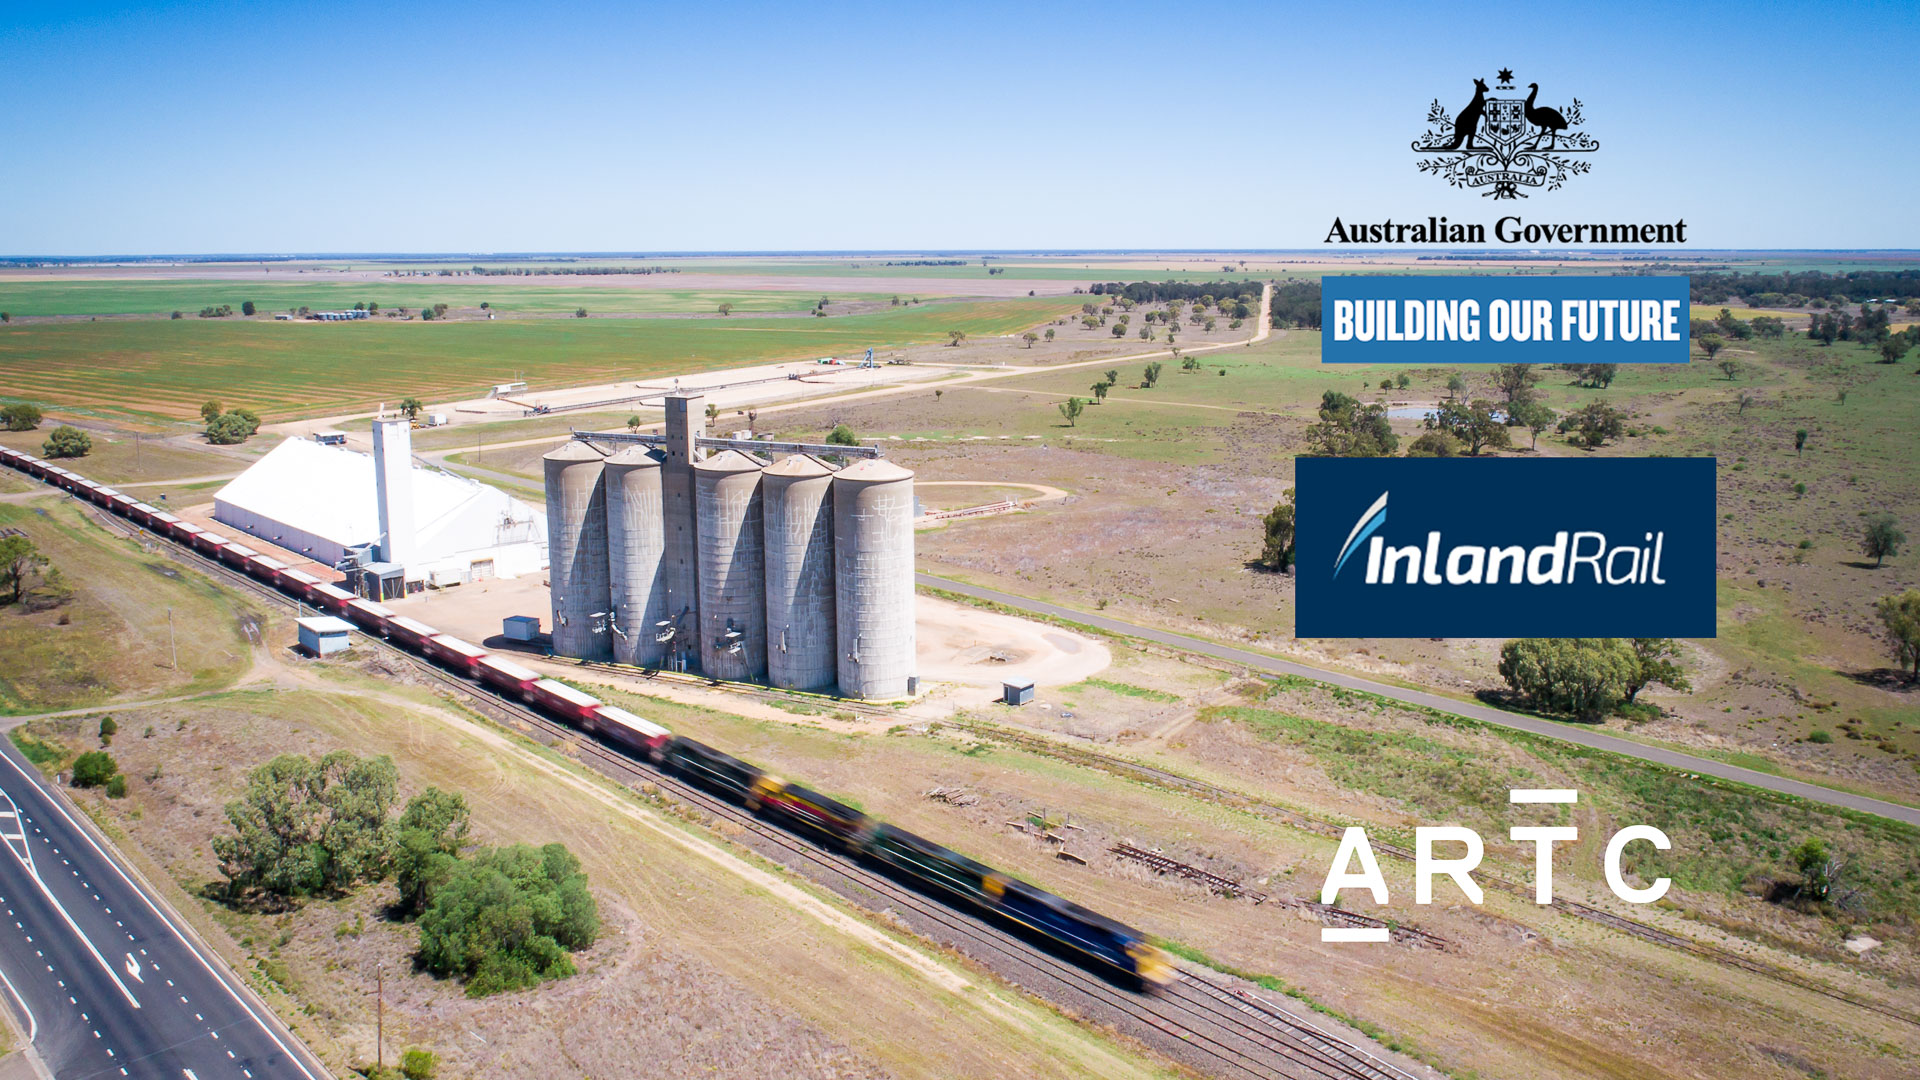 ARTC - Inland Rail Project